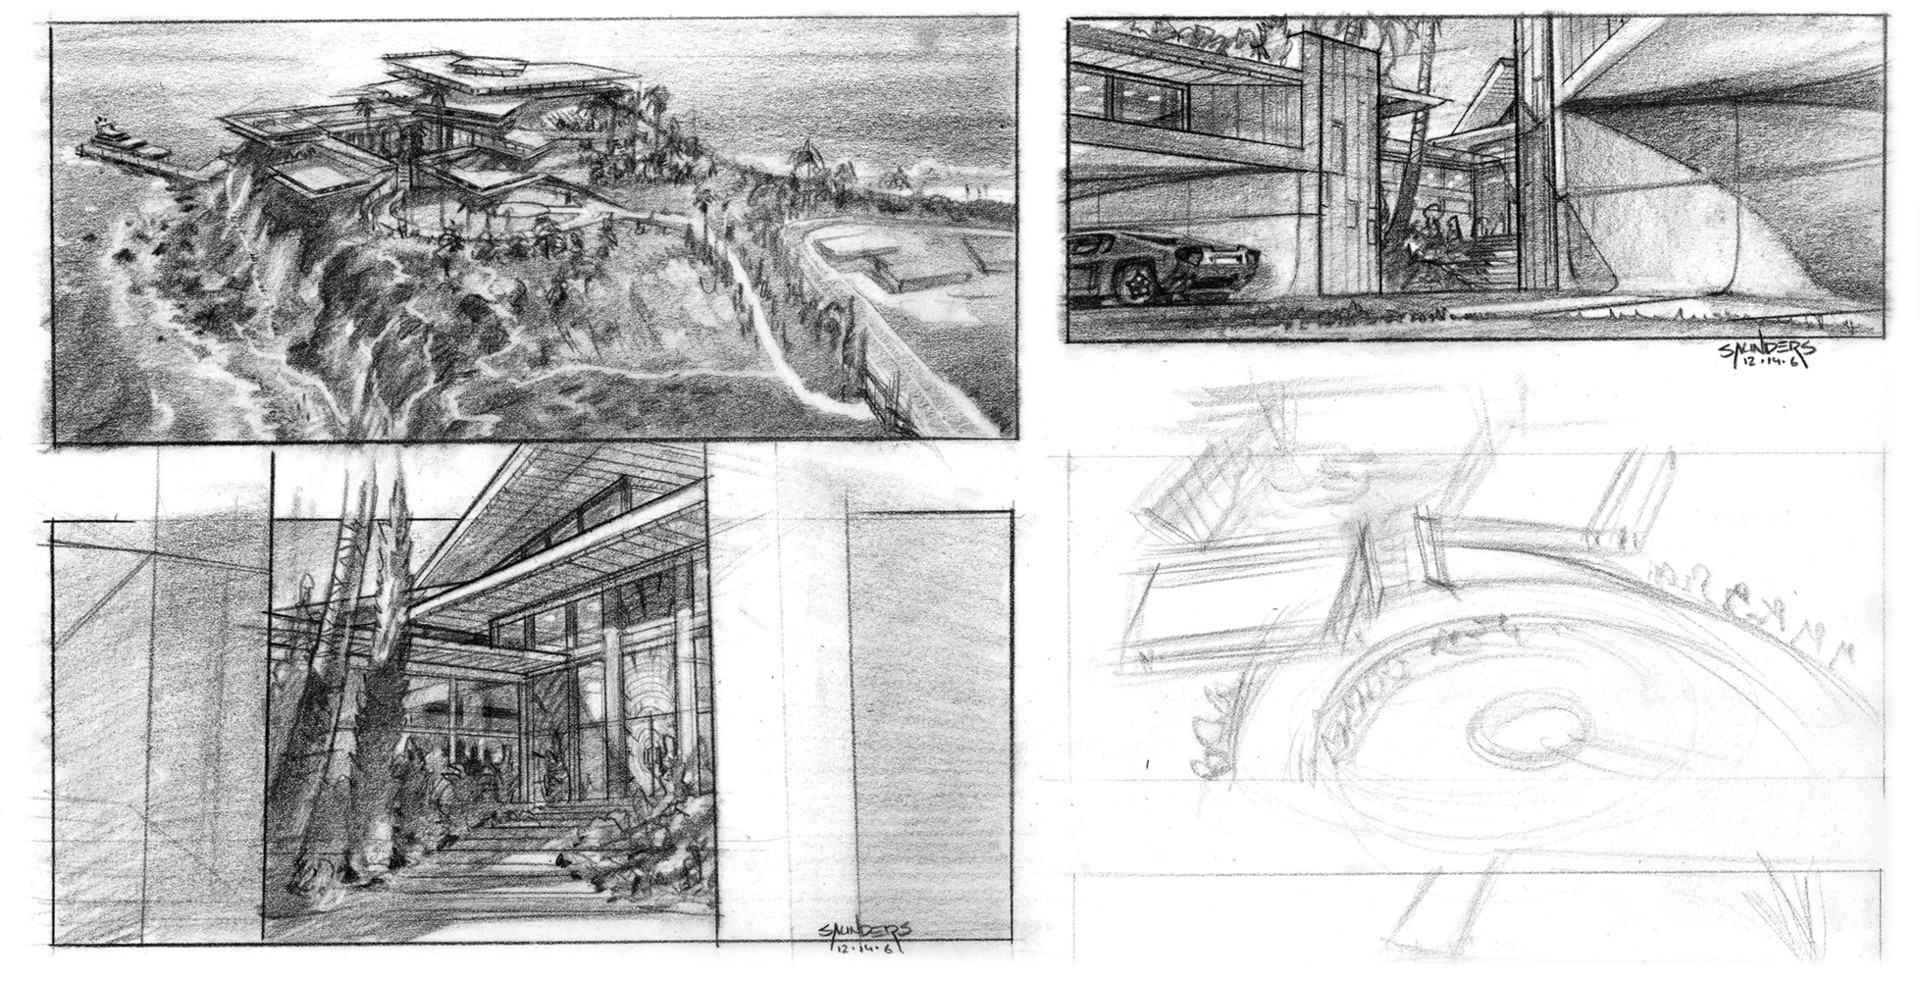 More sketches of the rectilinear version of the house.